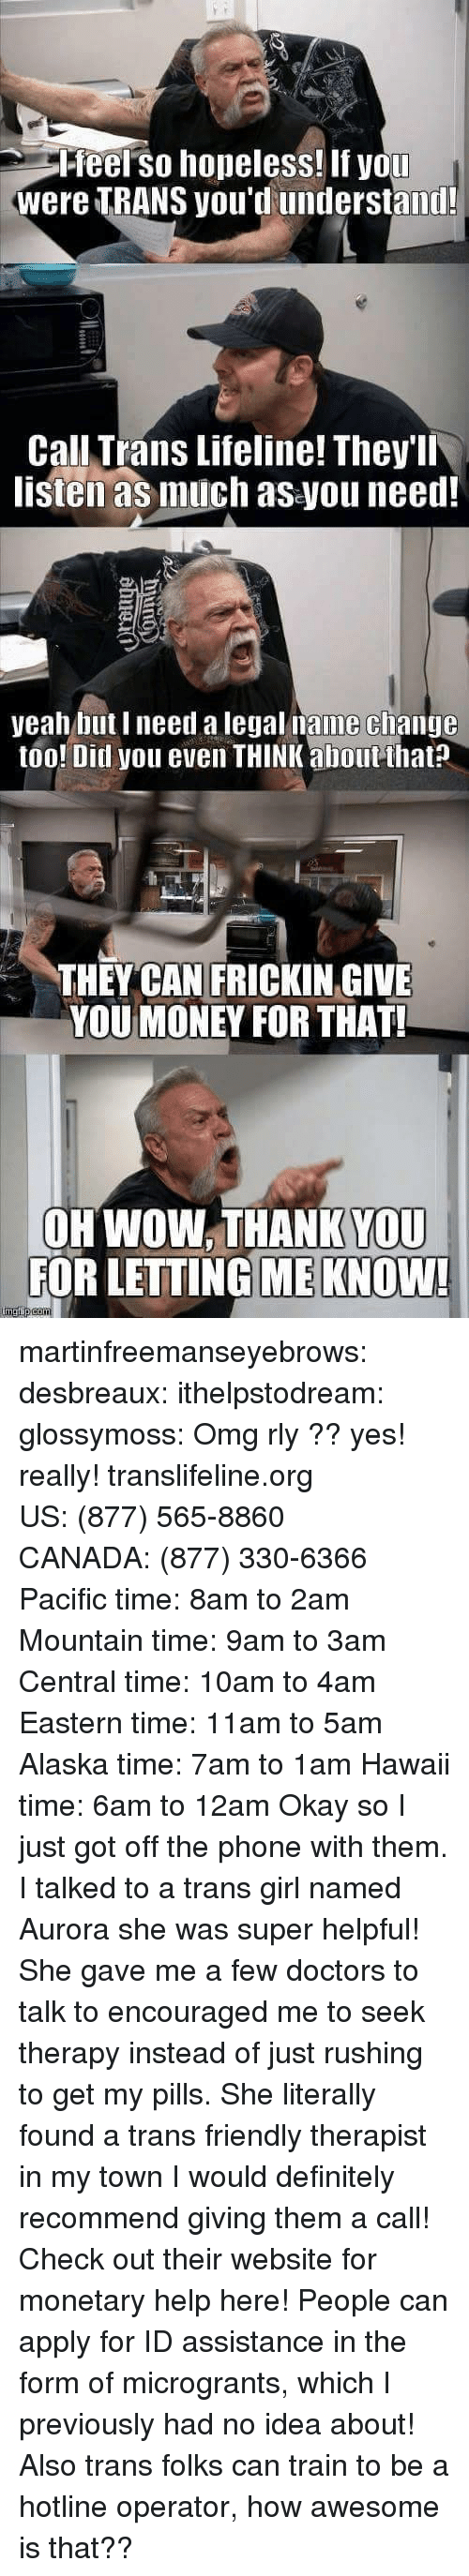 Definitely, Money, and Omg: Pfeel so hopeless! If you  were TRANS you'd understand!  Call Trans Lifeline! They'll  listen as much as you need!  yeah but I need a legal name clhange  too! Ditl you even THINK about that?  THEY CAN FRICKIN GIVE  YOU MONEY FOR THAT!  OH WOW. THANK YOU  FOR LETTING ME KNOW! martinfreemanseyebrows: desbreaux:  ithelpstodream:  glossymoss:  Omg rly ??  yes! really! translifeline.org US: (877) 565-8860 CANADA: (877) 330-6366 Pacific time: 8am to 2am Mountain time: 9am to 3am Central time: 10am to 4am Eastern time: 11am to 5am Alaska time: 7am to 1am Hawaii time: 6am to 12am   Okay so I just got off the phone with them. I talked to a trans girl named Aurora  she was super helpful! She gave me a few doctors to talk to  encouraged me to seek therapy instead of just rushing to get my pills. She literally found a trans friendly therapist in my town  I would definitely recommend giving them a call!   Check out their website for monetary help here! People can apply for ID assistance in the form of microgrants, which I previously had no idea about! Also trans folks can train to be a hotline operator, how awesome is that??